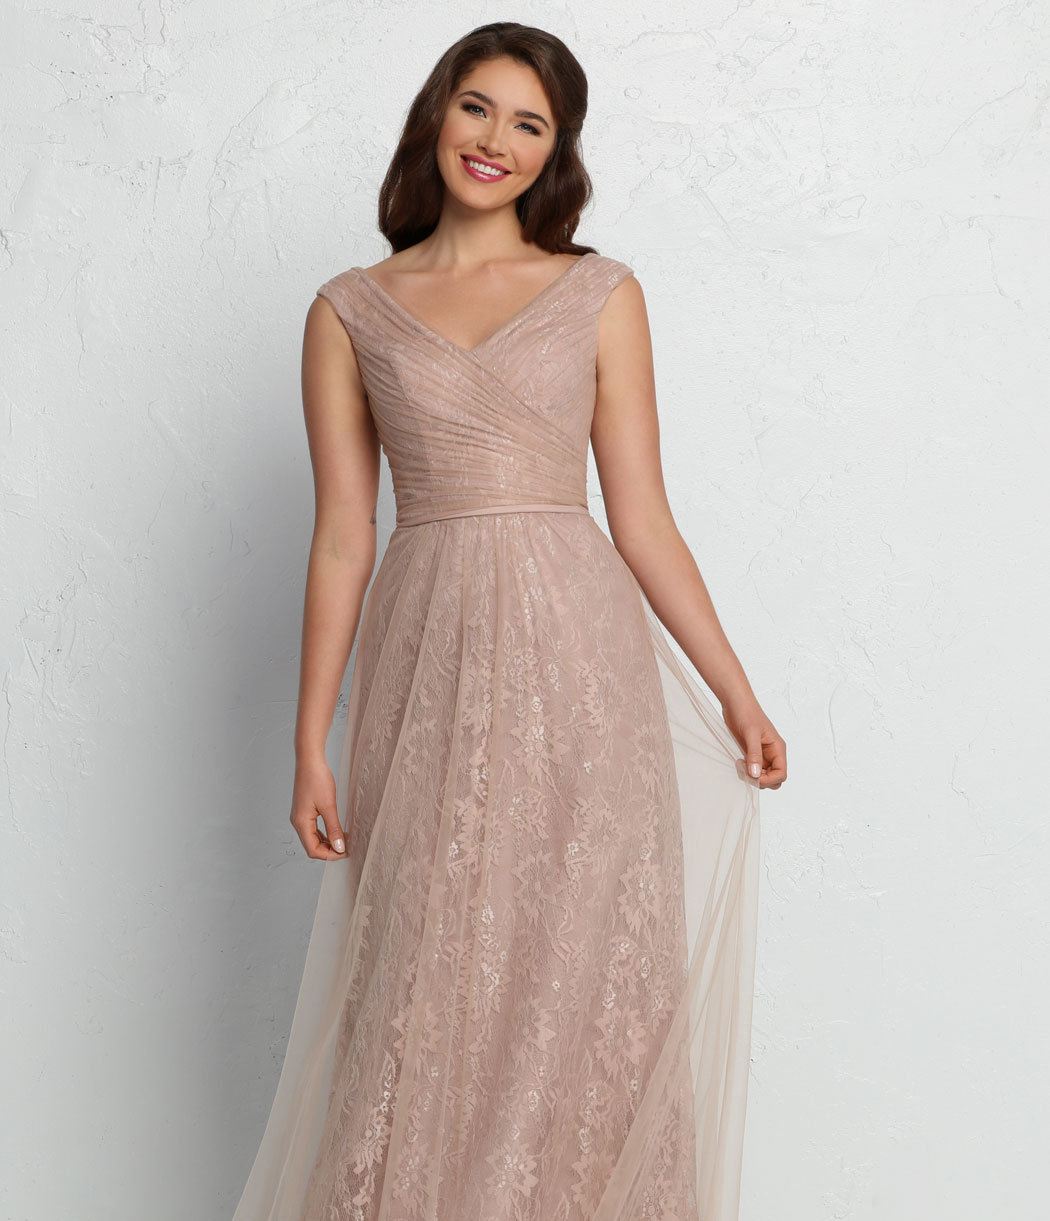 Wedding bridesmaid dresses davinci bridal collection informal bridesmaid ombrellifo Choice Image